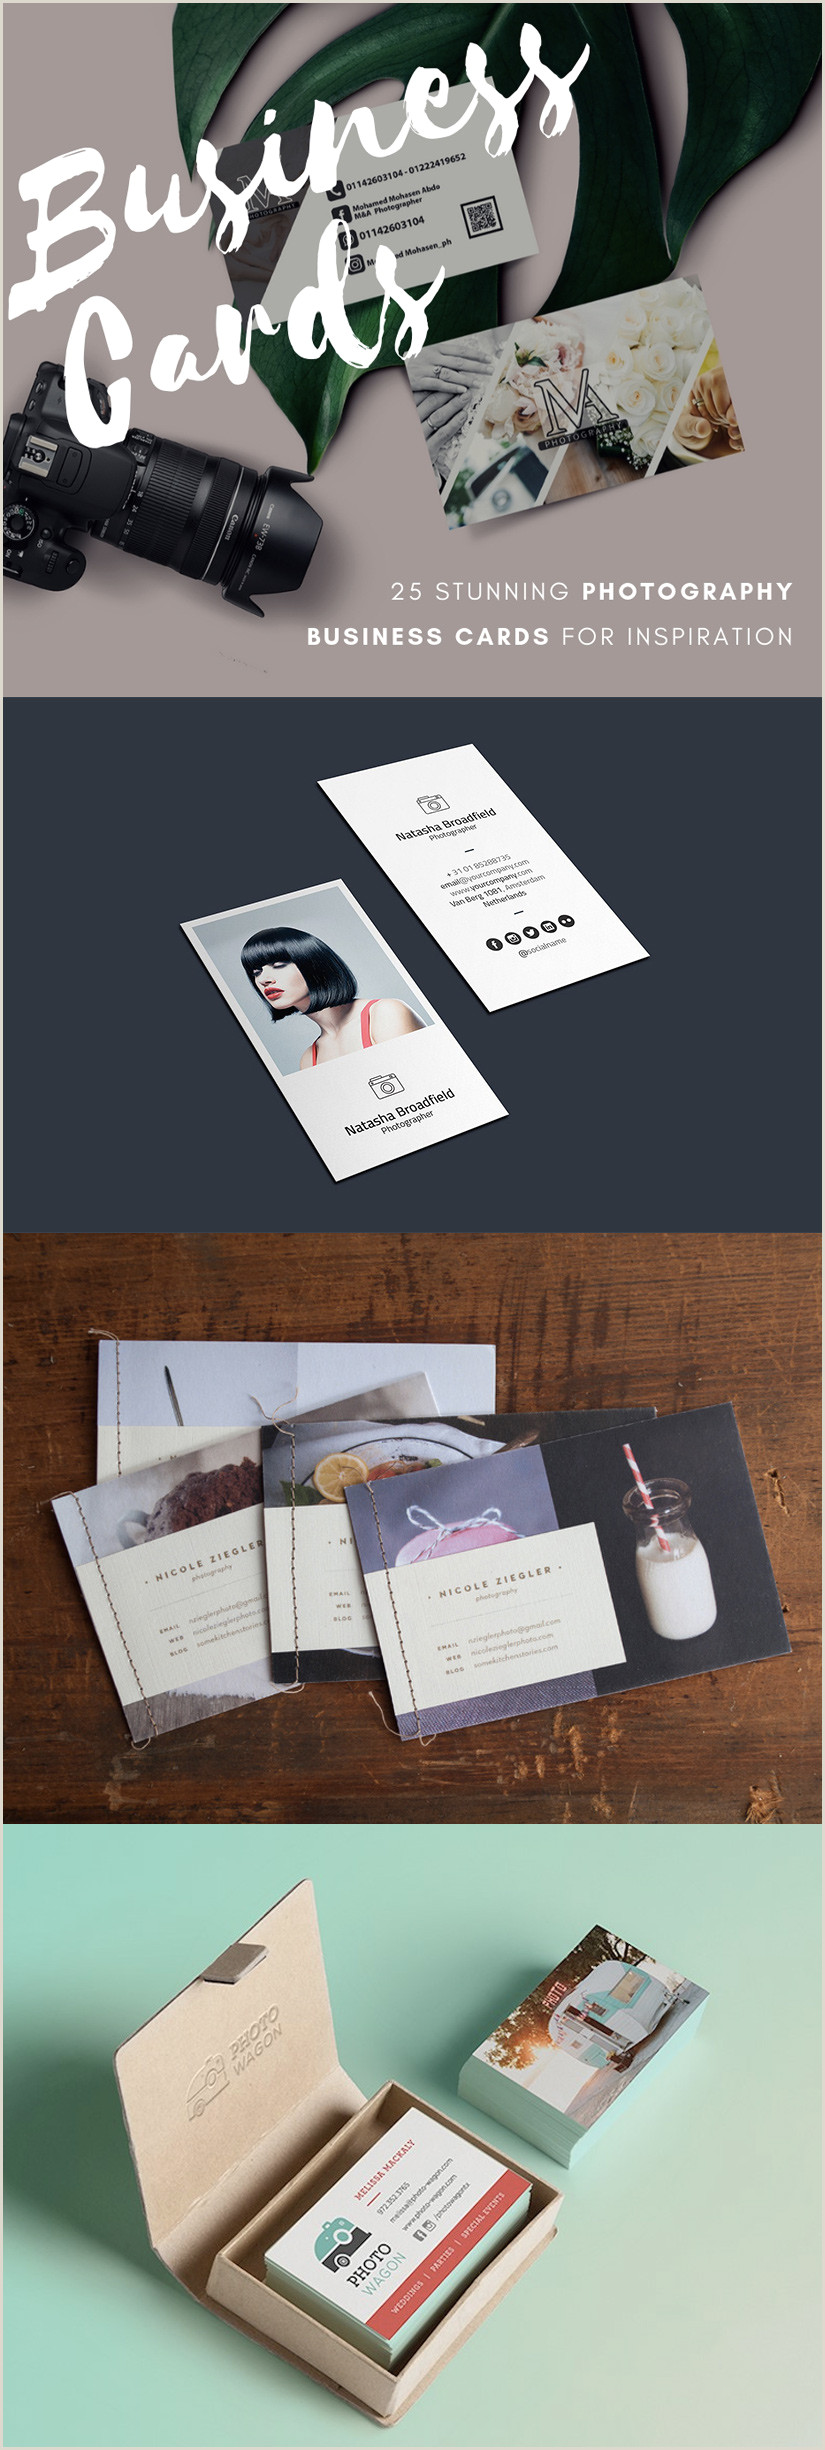 Unique Photography Business Card 50 Best Graphy Business Cards For Inspiration